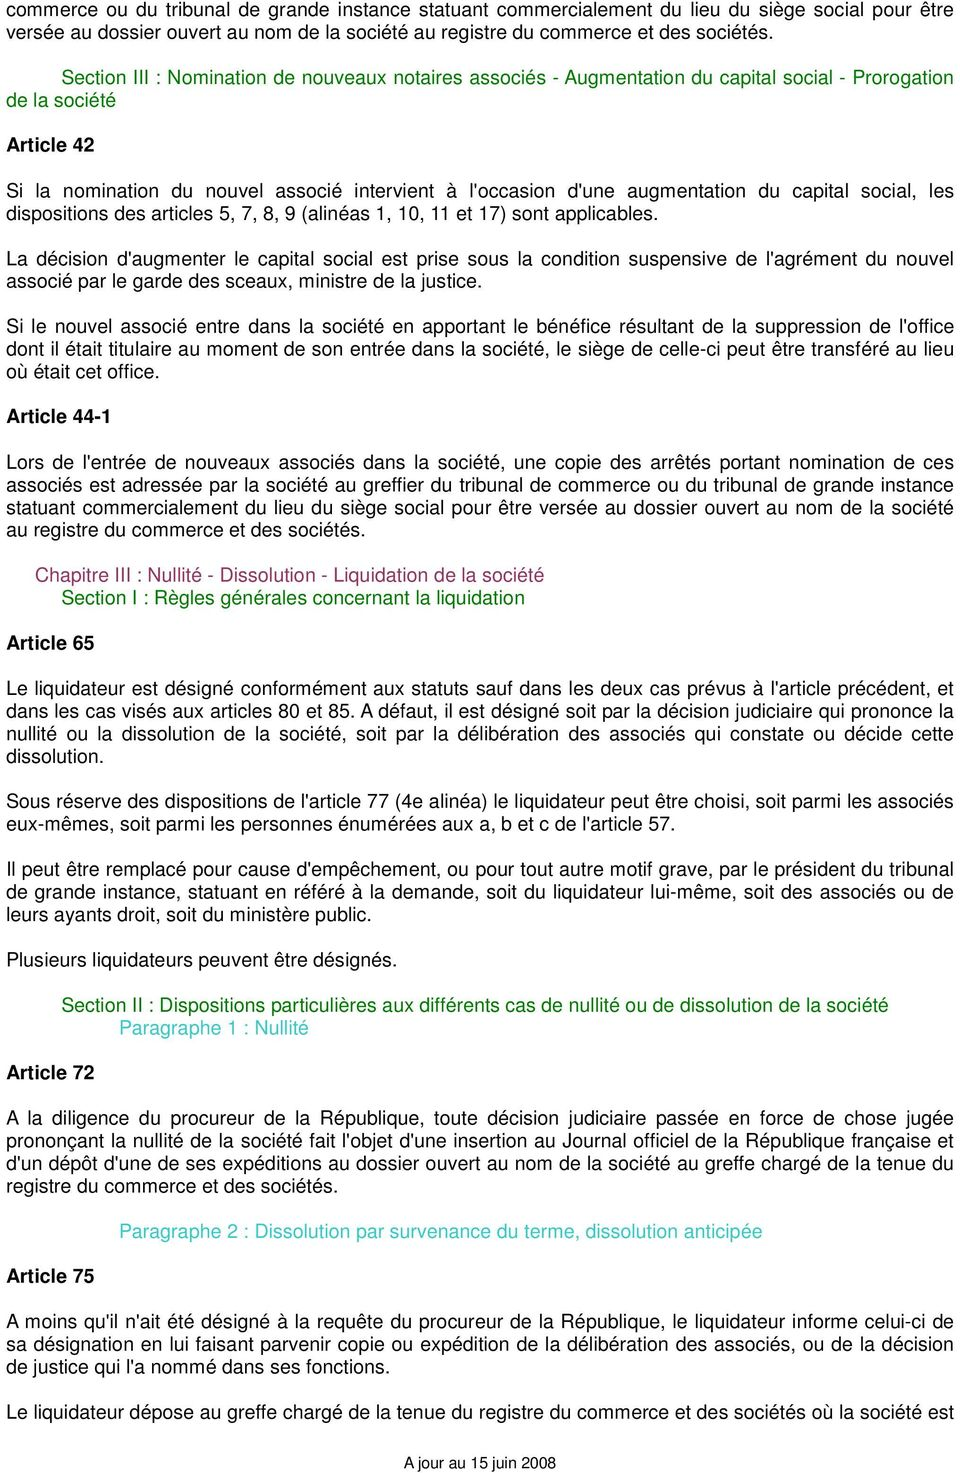 augmentation du capital social, les dispositions des articles 5, 7, 8, 9 (alinéas 1, 10, 11 et 17) sont applicables.